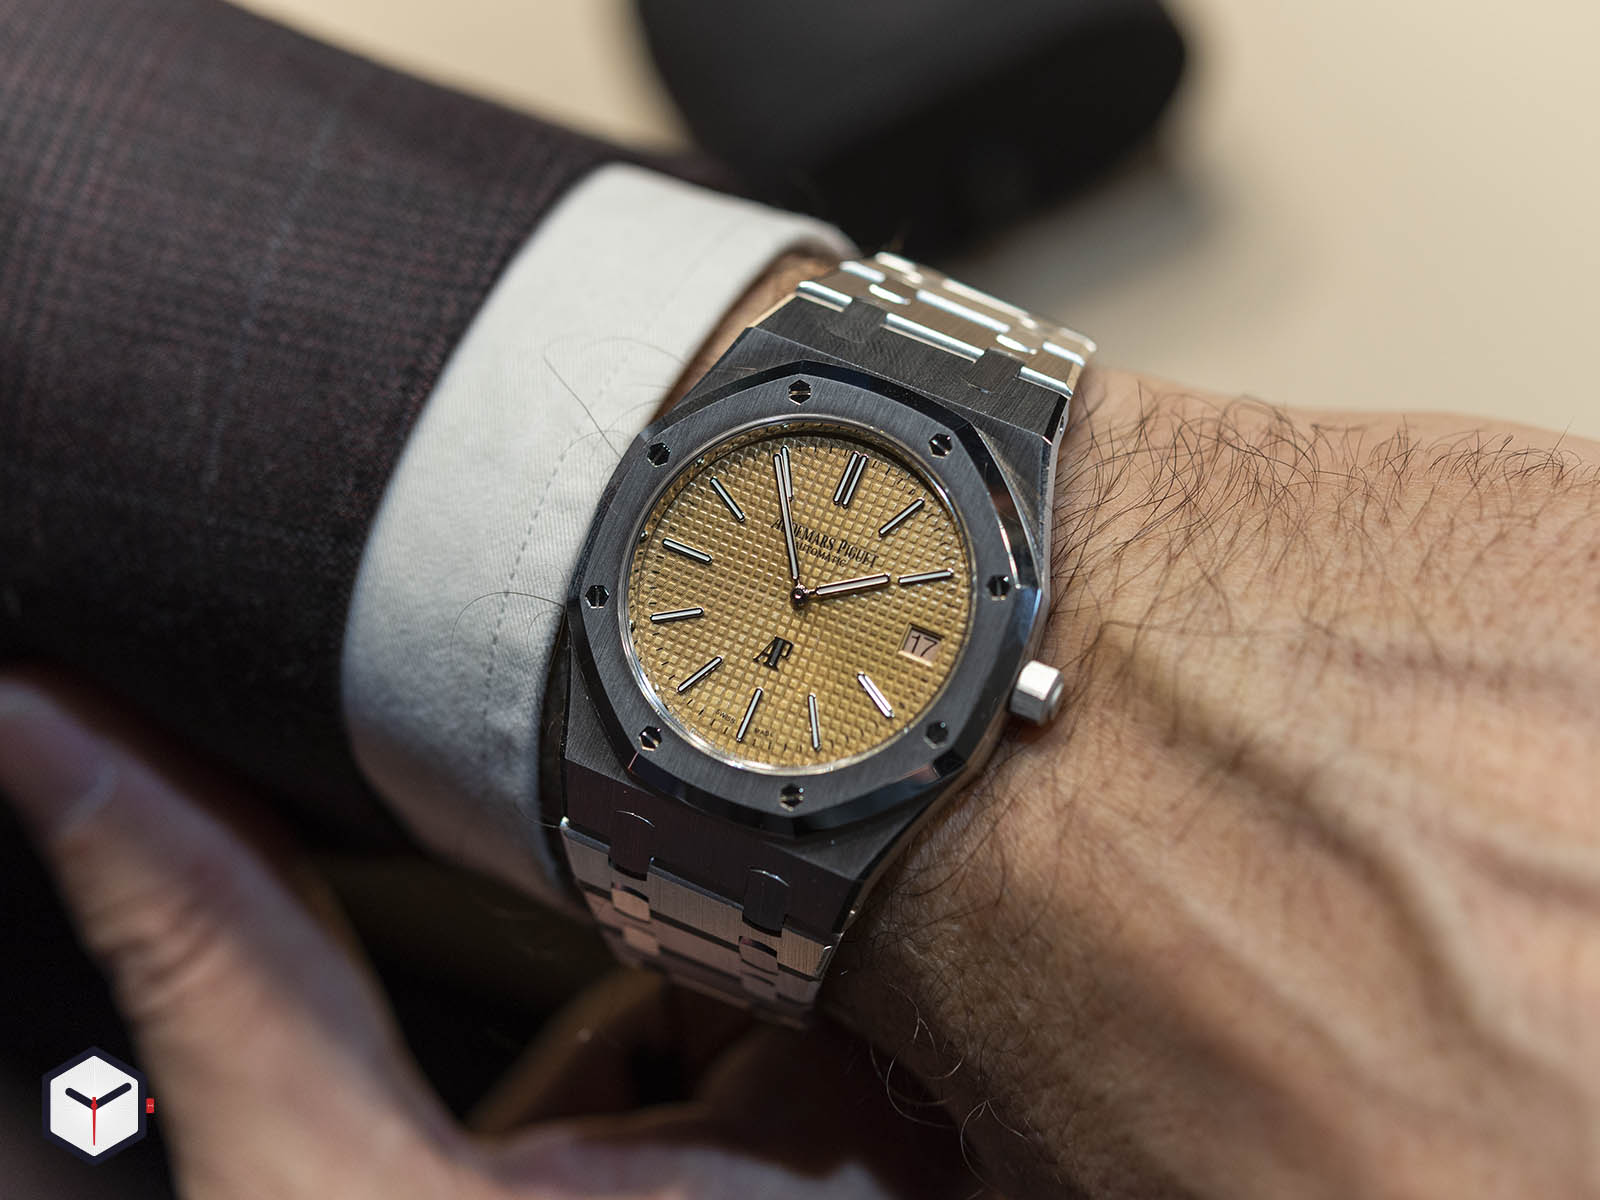 15202bc-oo-1240bc-01-audemars-piguet-royal-oak-jumbo-extra-thin-2019-8.jpg